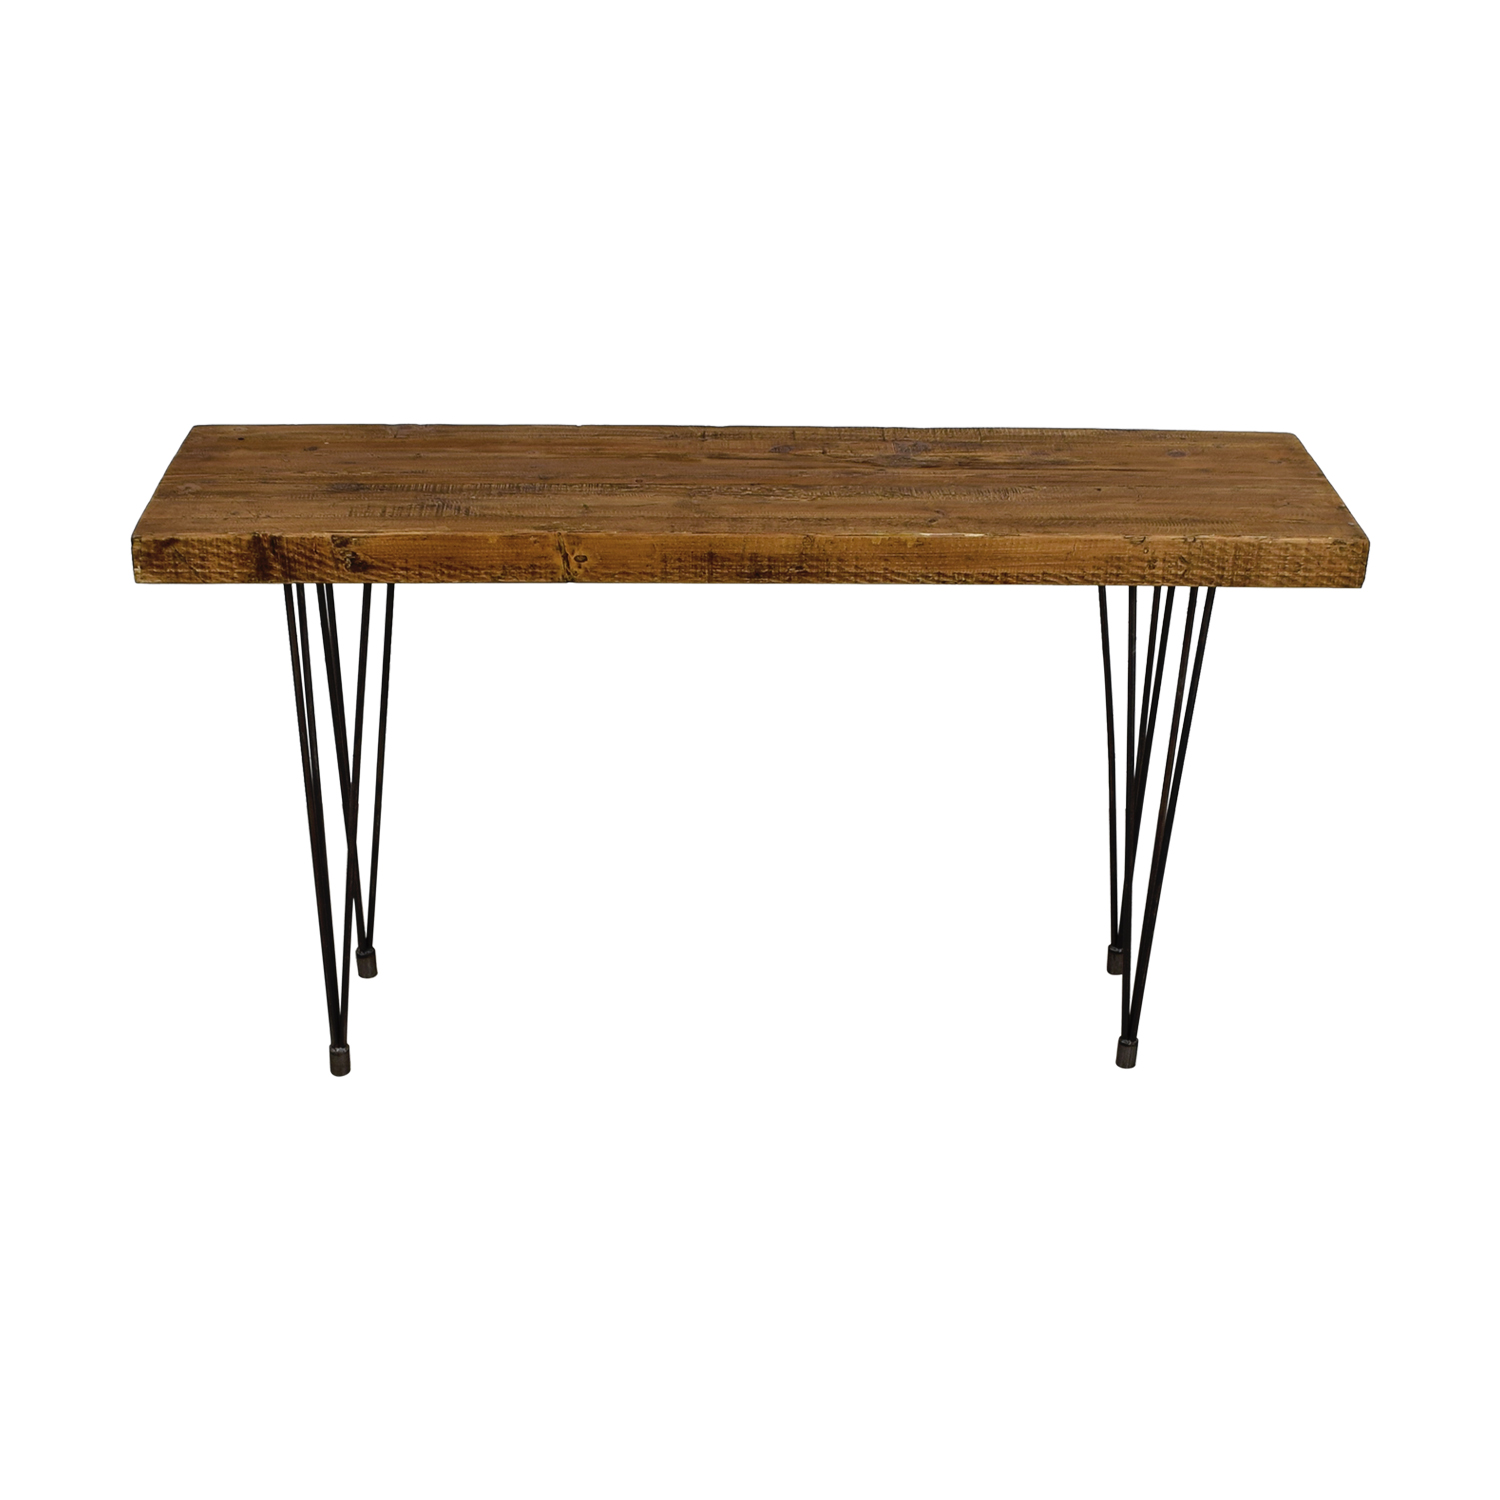 Does Home Collection Does Home Collection Boneta Rustic Wood Console on sale